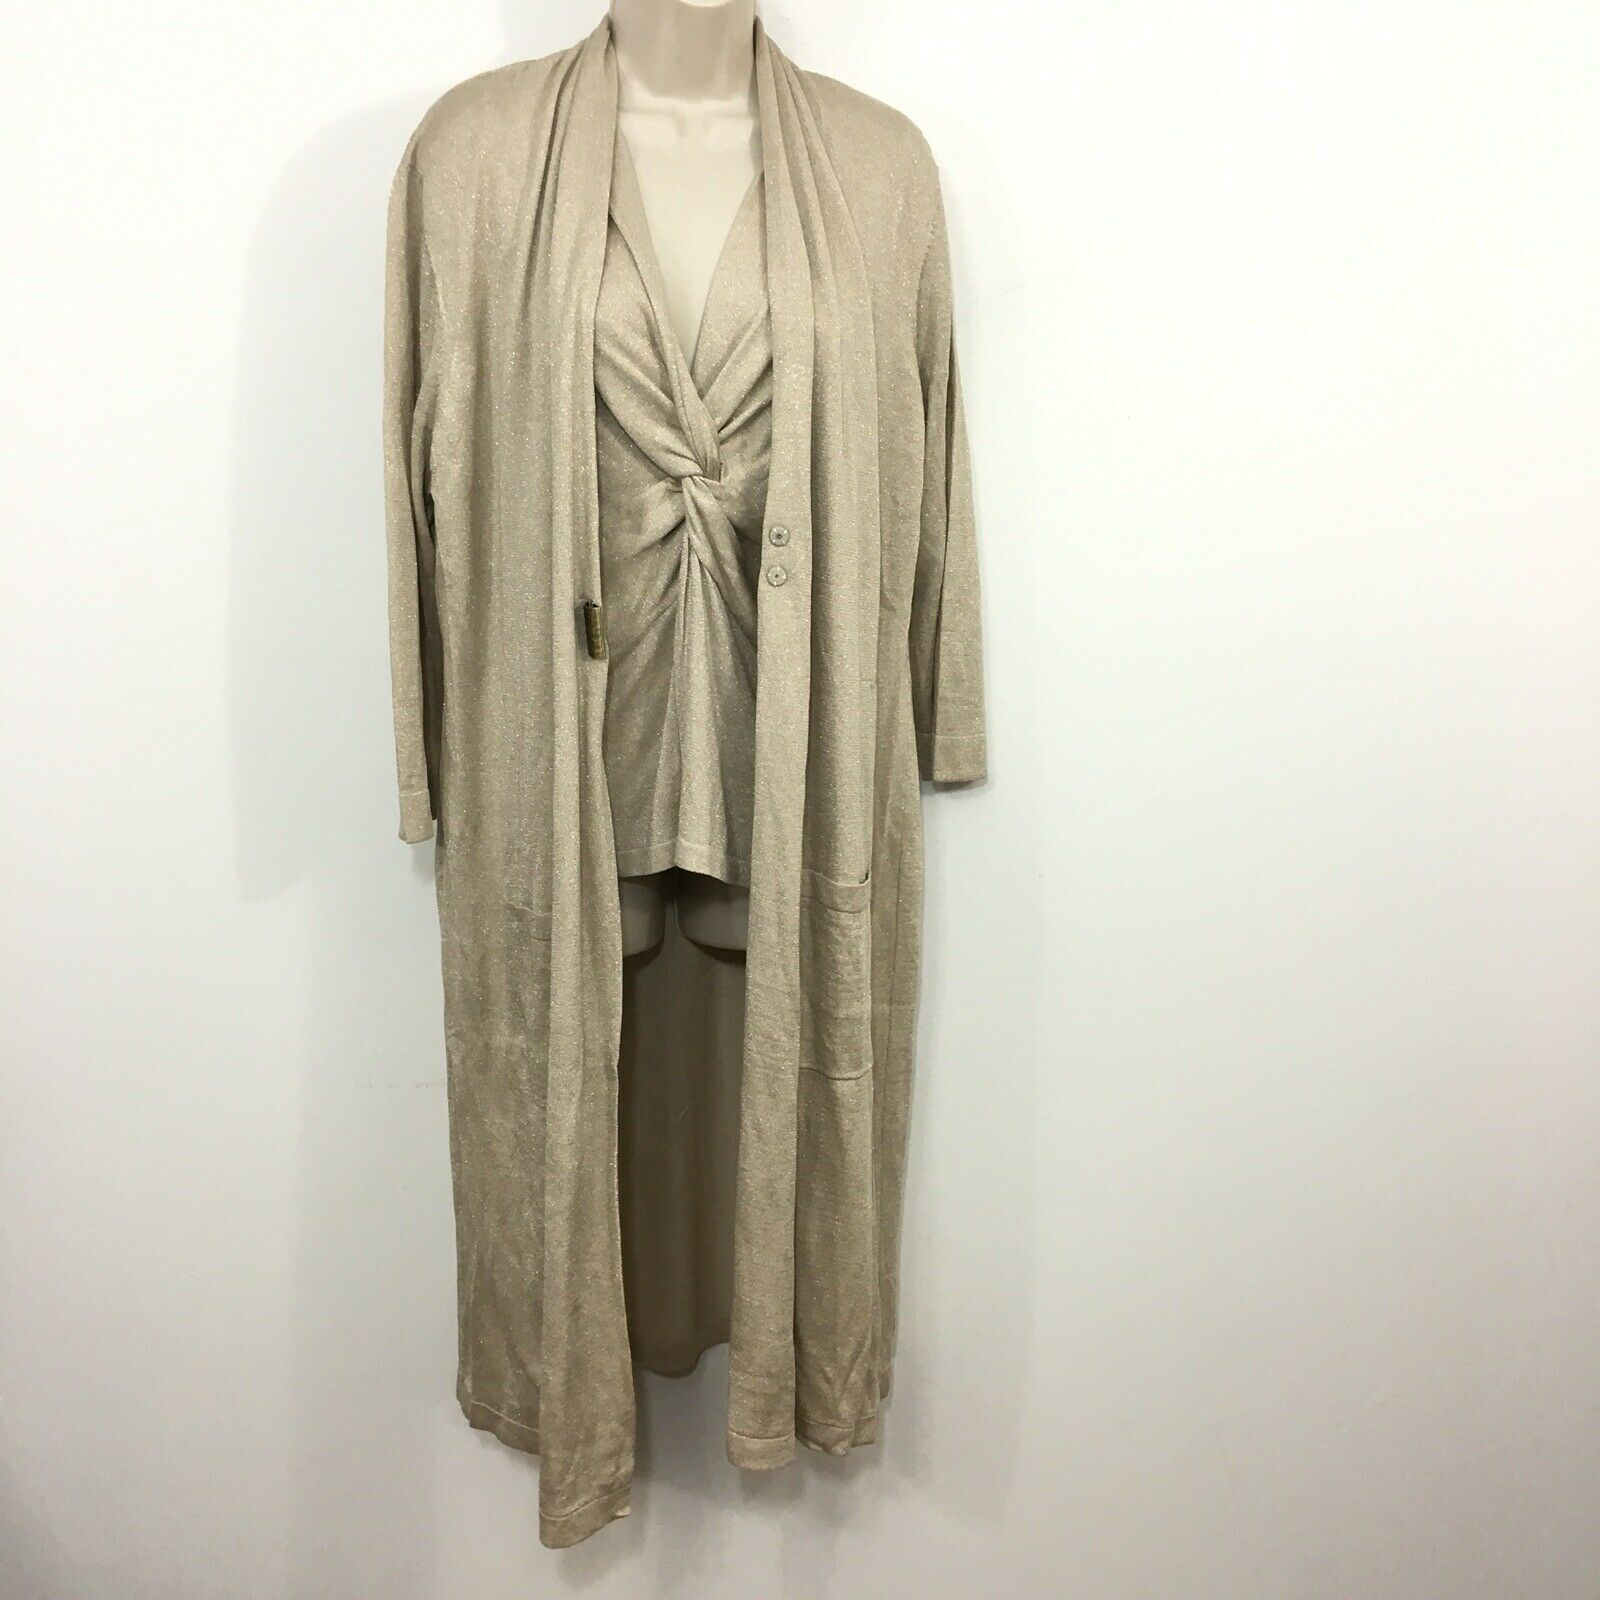 NWT Magaschoni Duster Cardigan TwinSet Metallic Beige gold  L XL